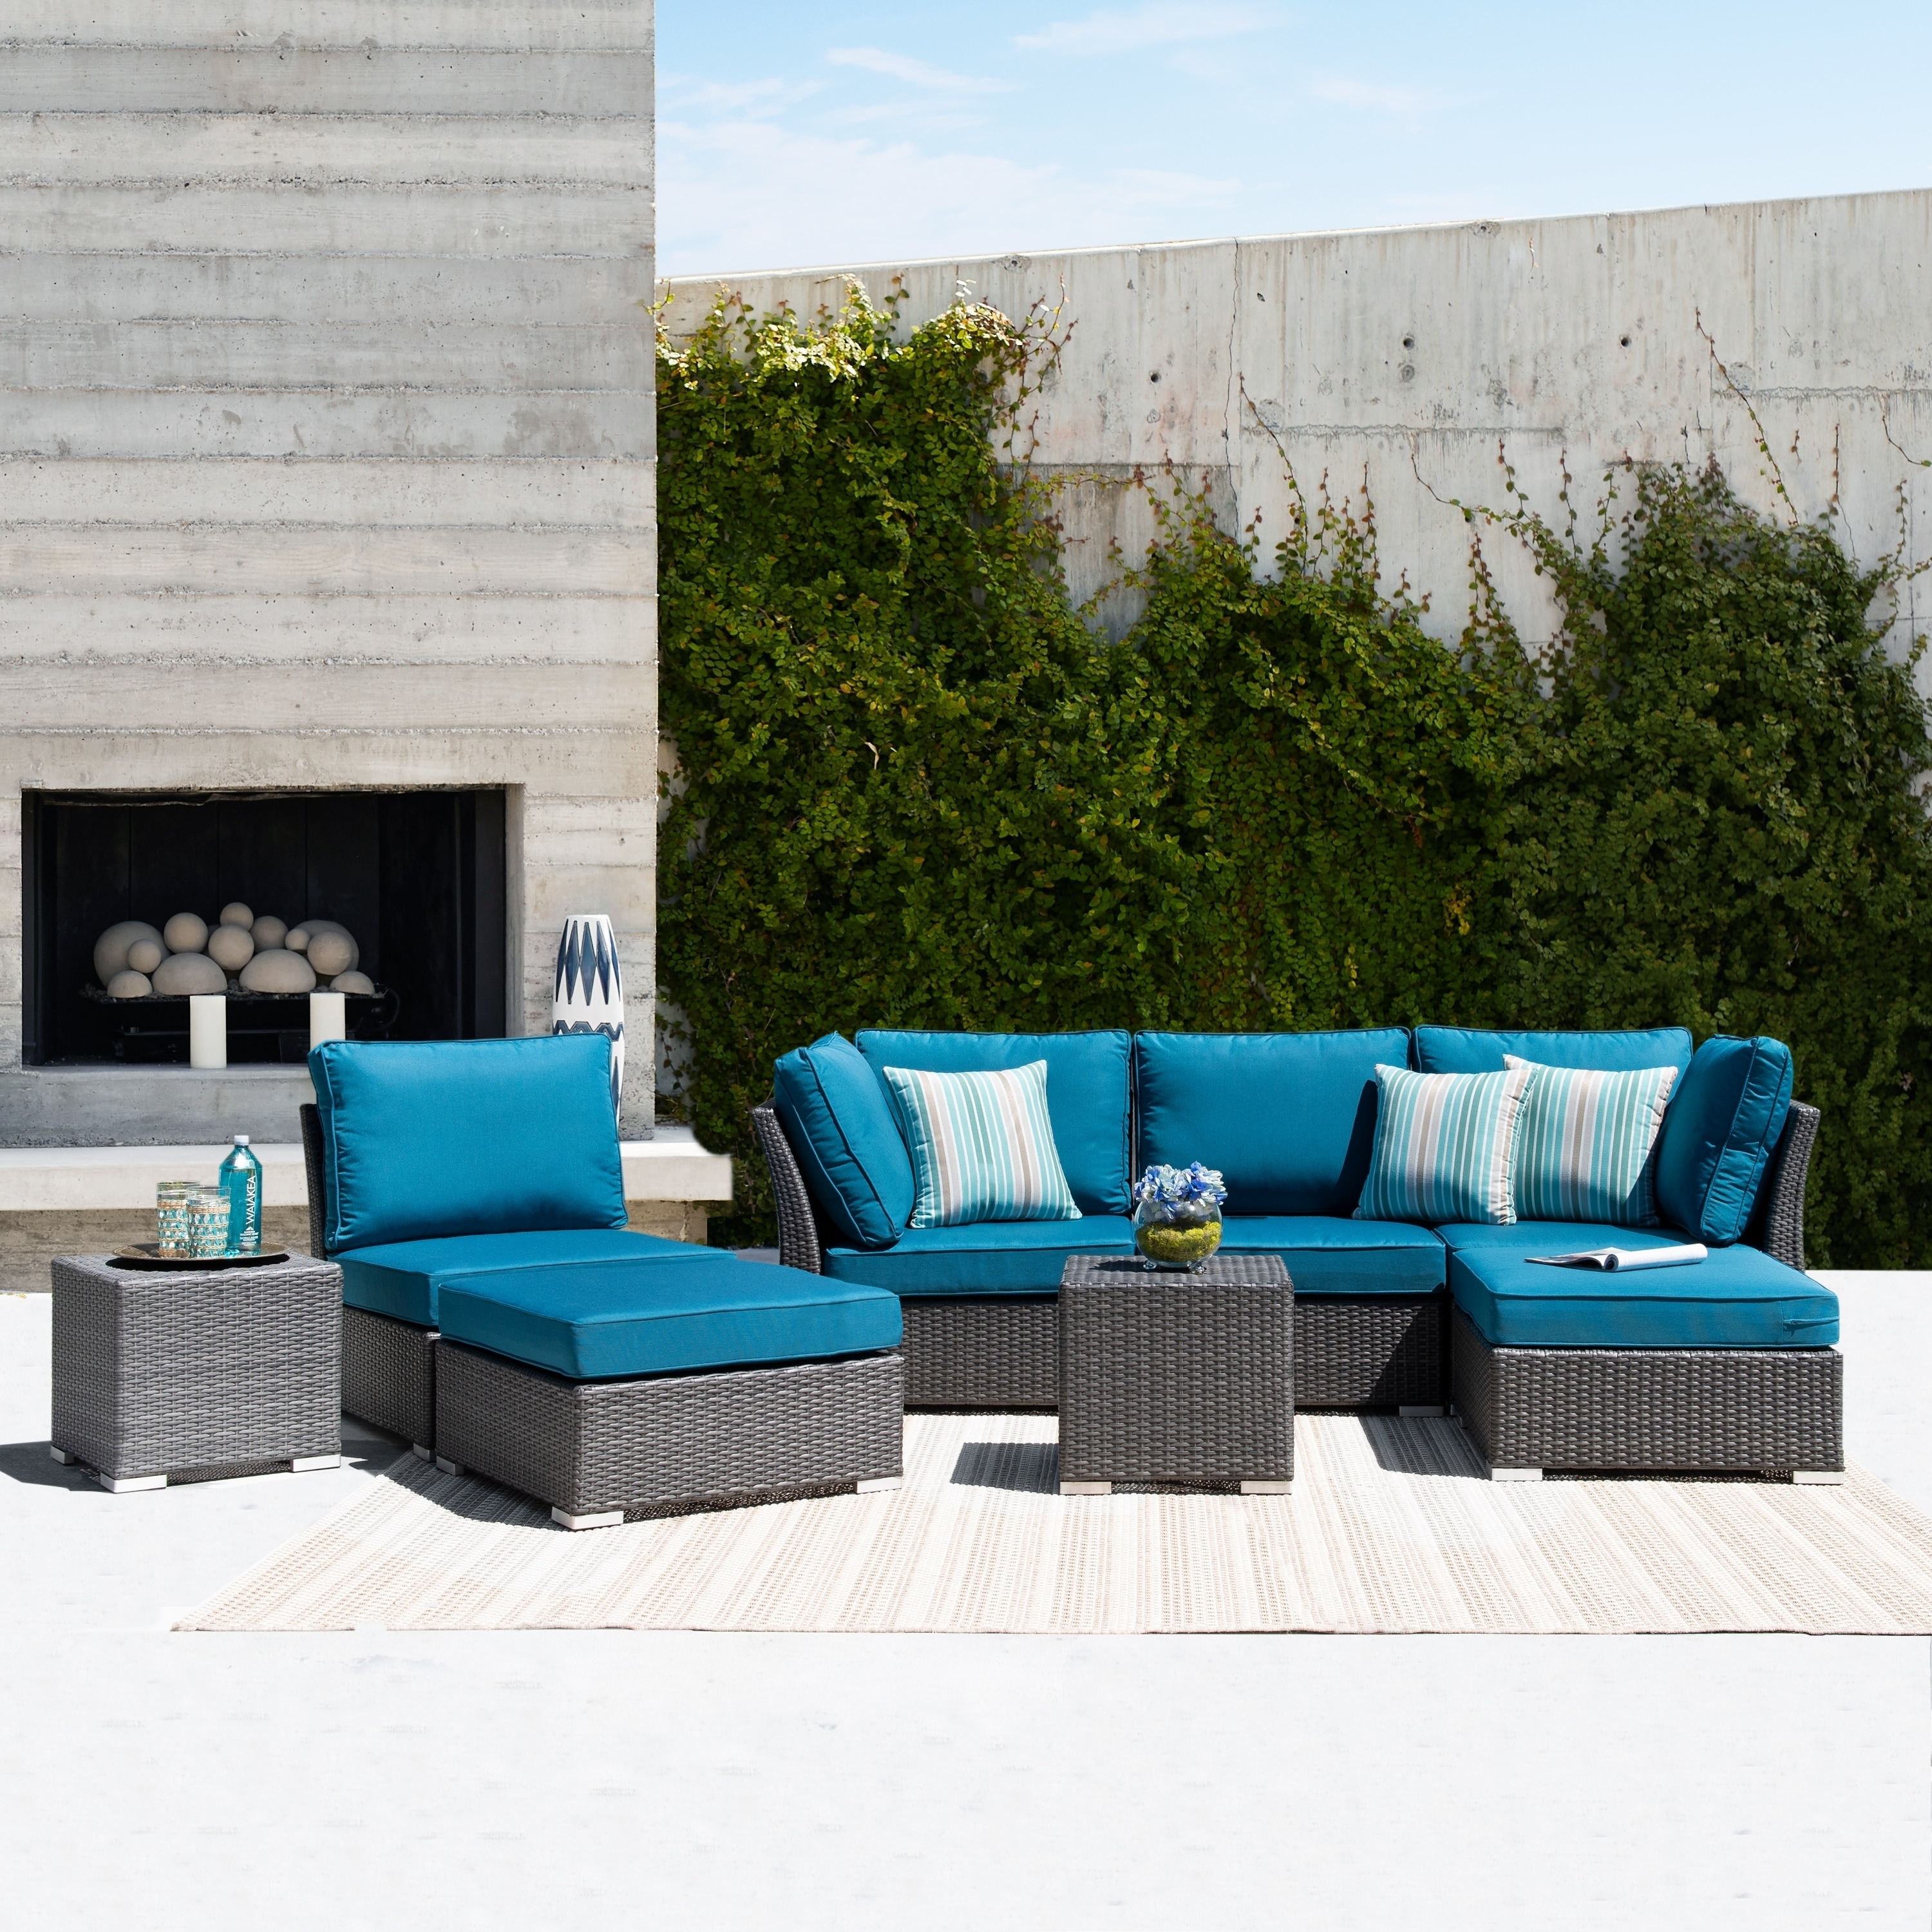 Corvus 8 Piece Dark Grey Wicker Patio Aluminum Sofa Set With Blue Cushions